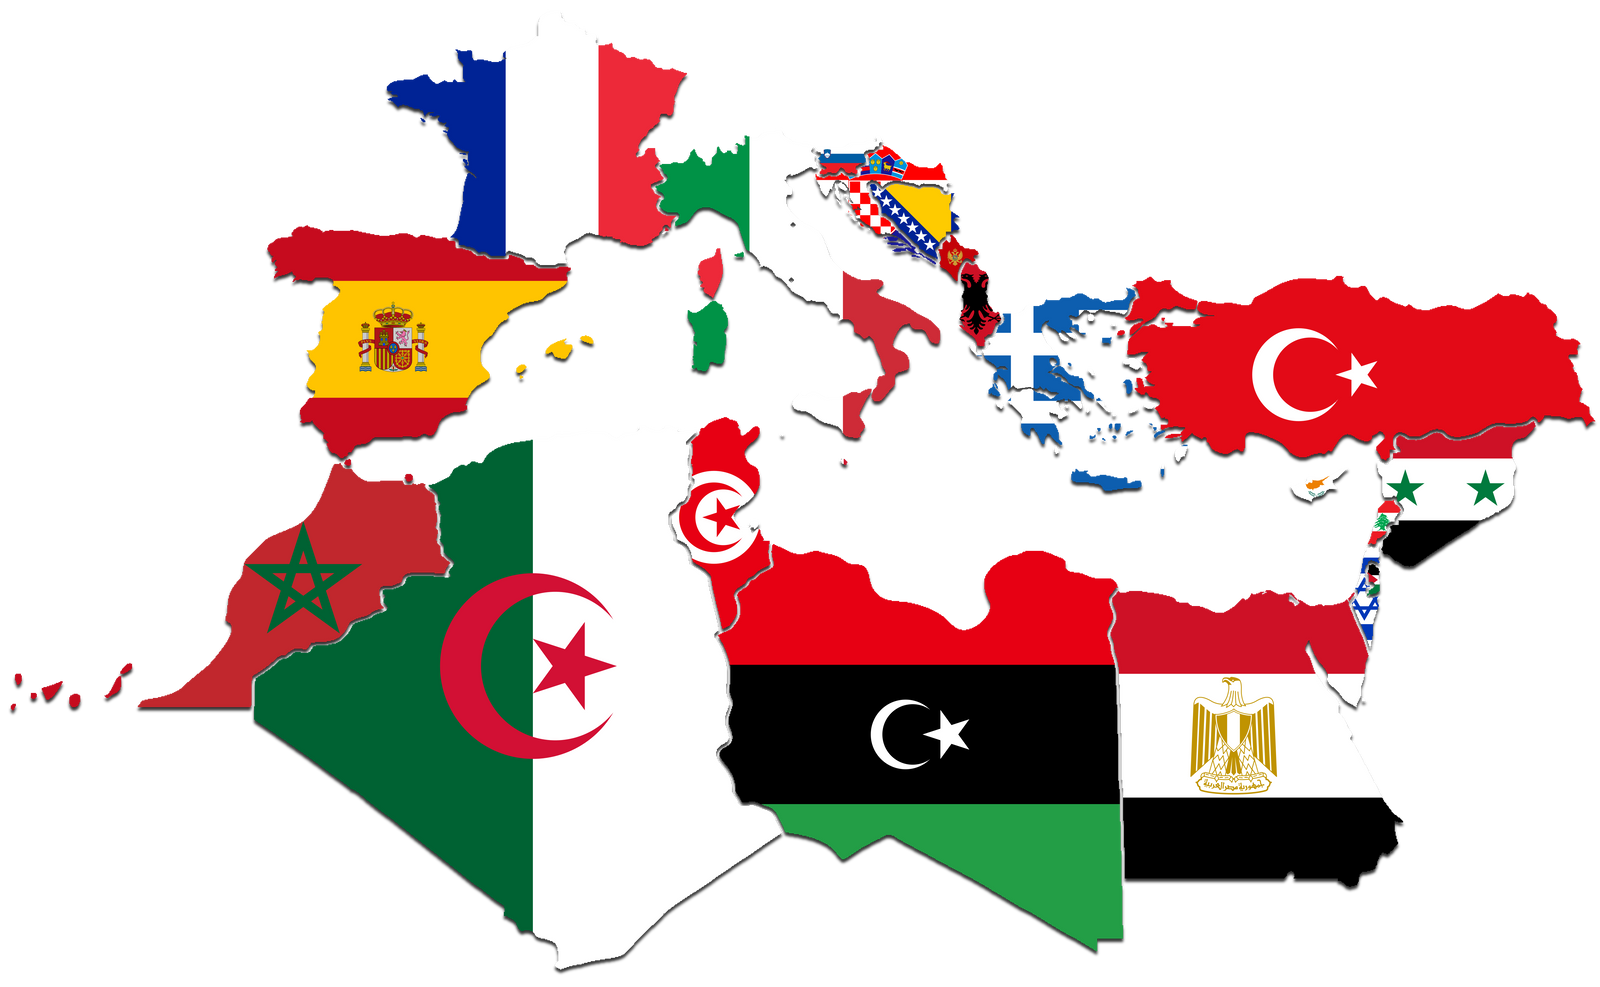 Mediterranean countries flag map by captainvoda on deviantart mediterranean countries flag map by captainvoda gumiabroncs Image collections